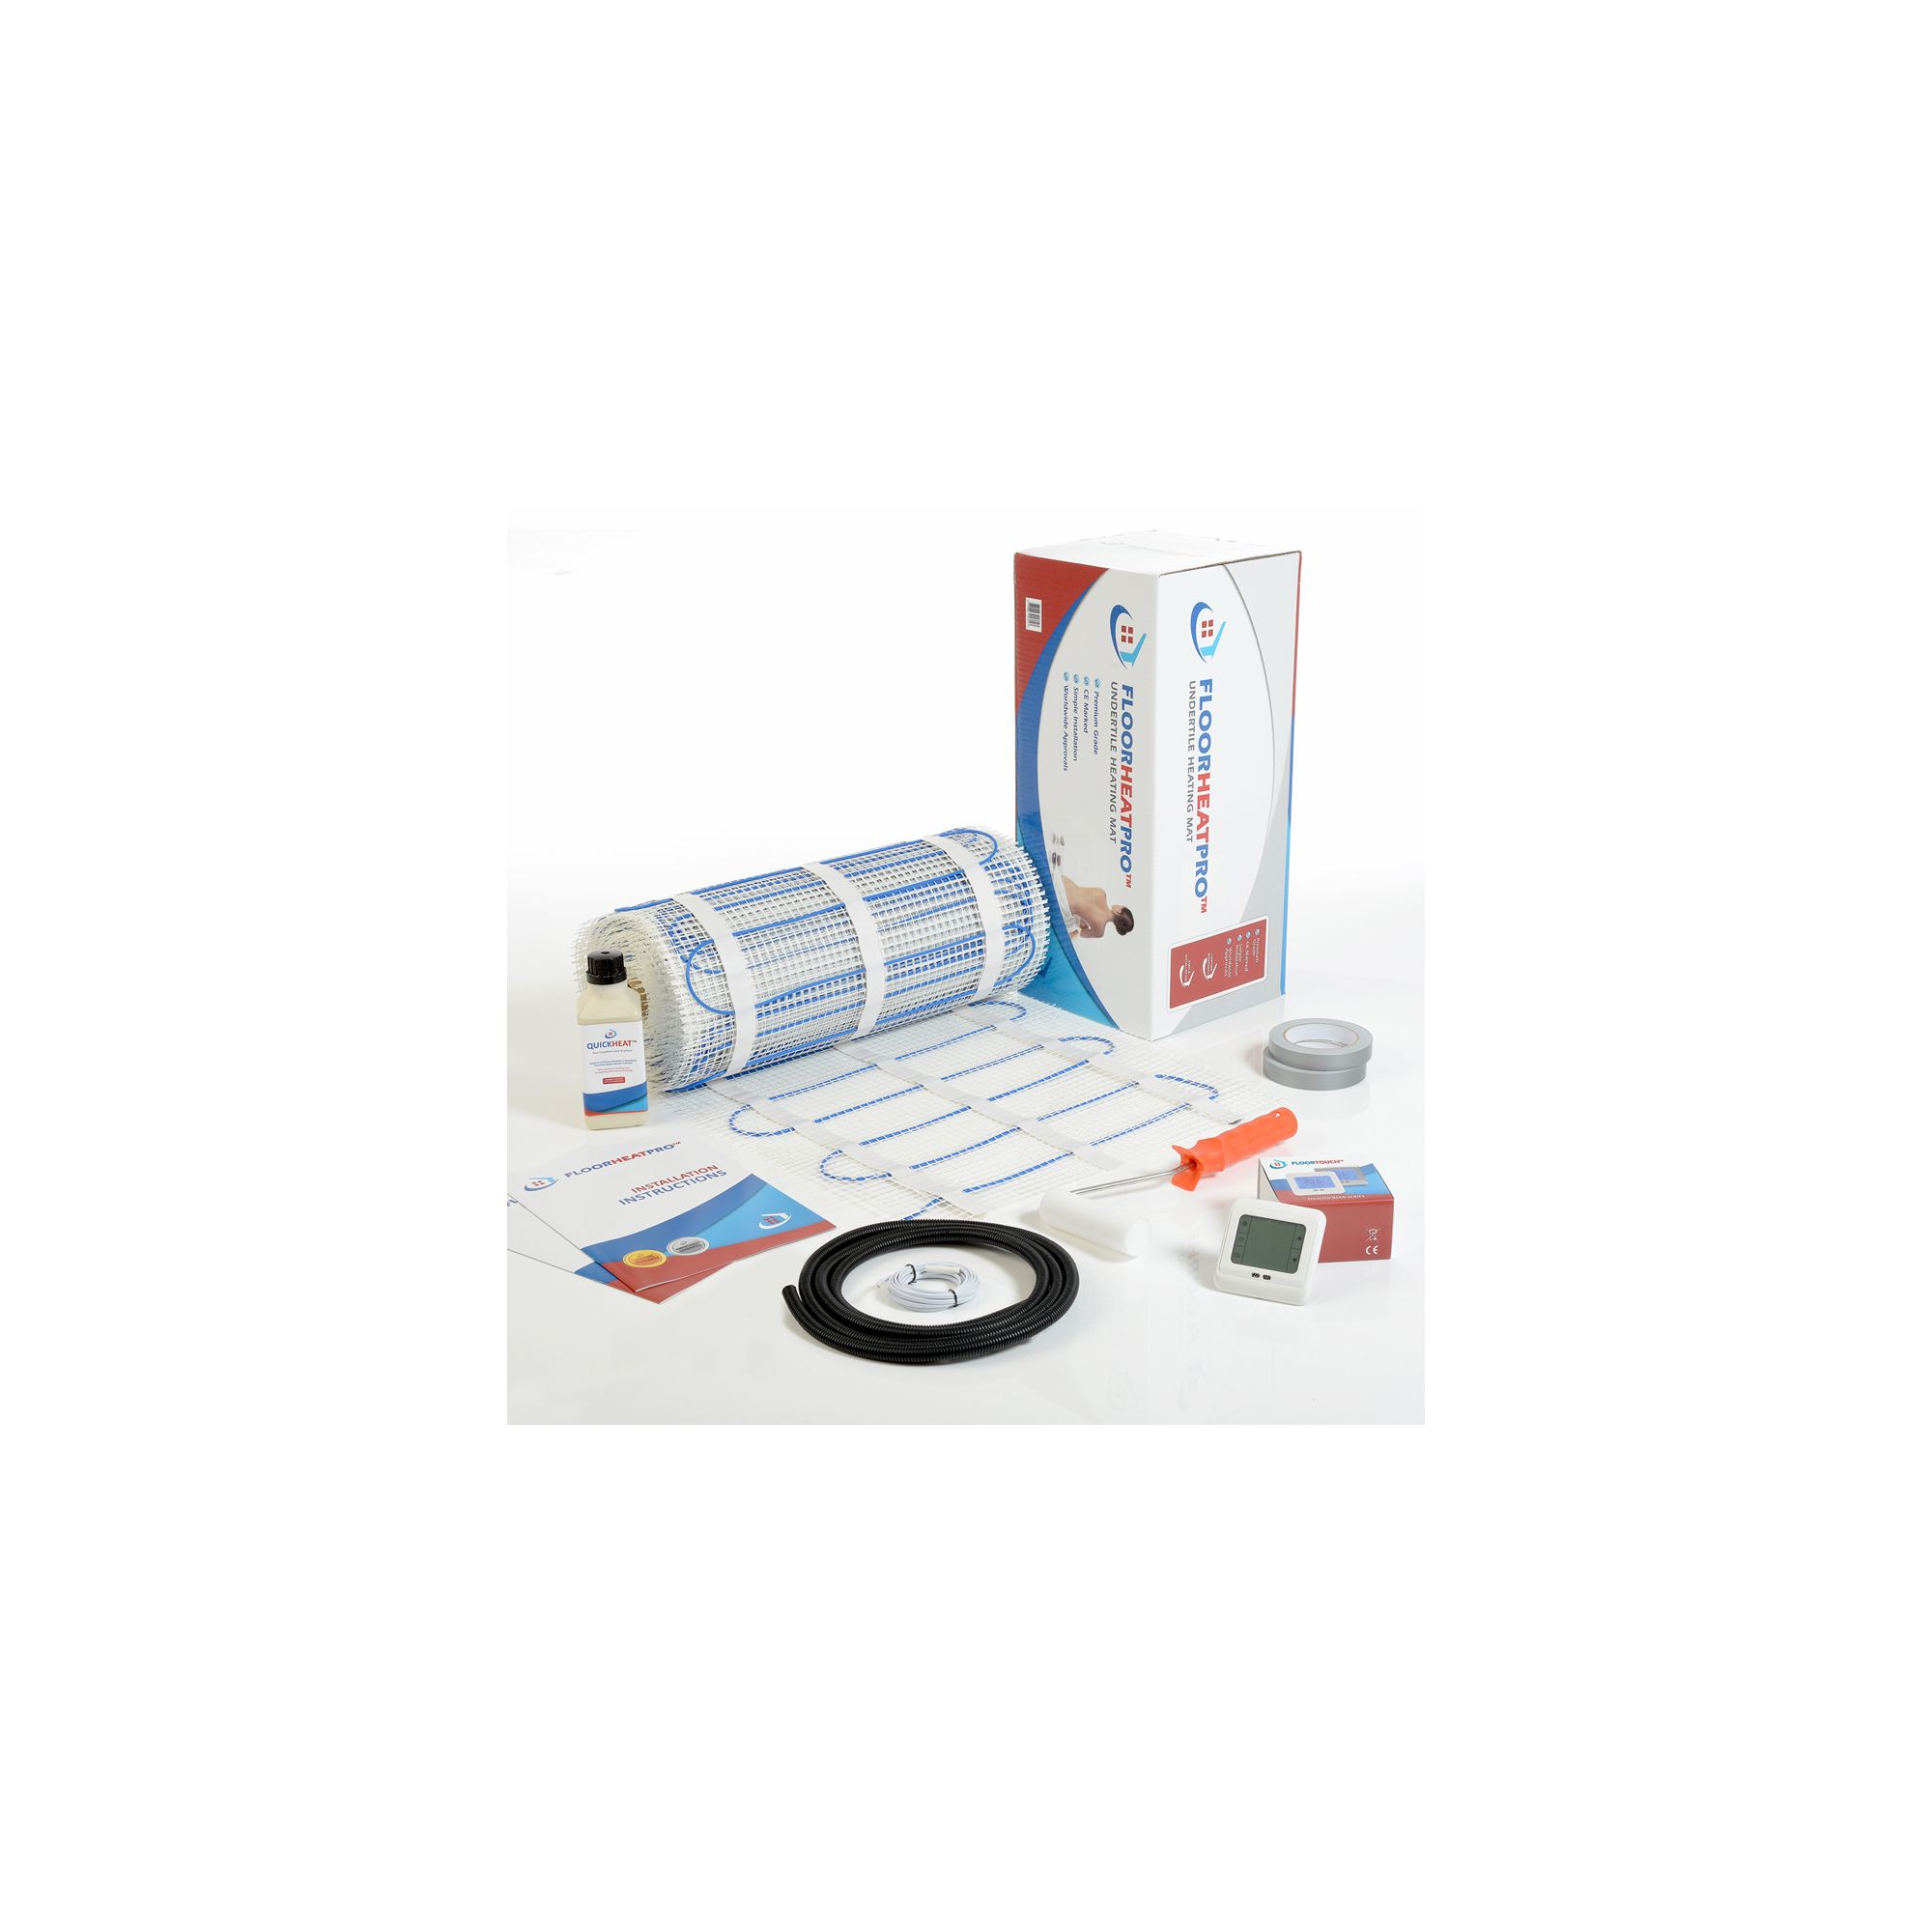 18.0m2 - Underfloor Electric Heating Kit 150w/m2 - Tiles at Tesco Direct